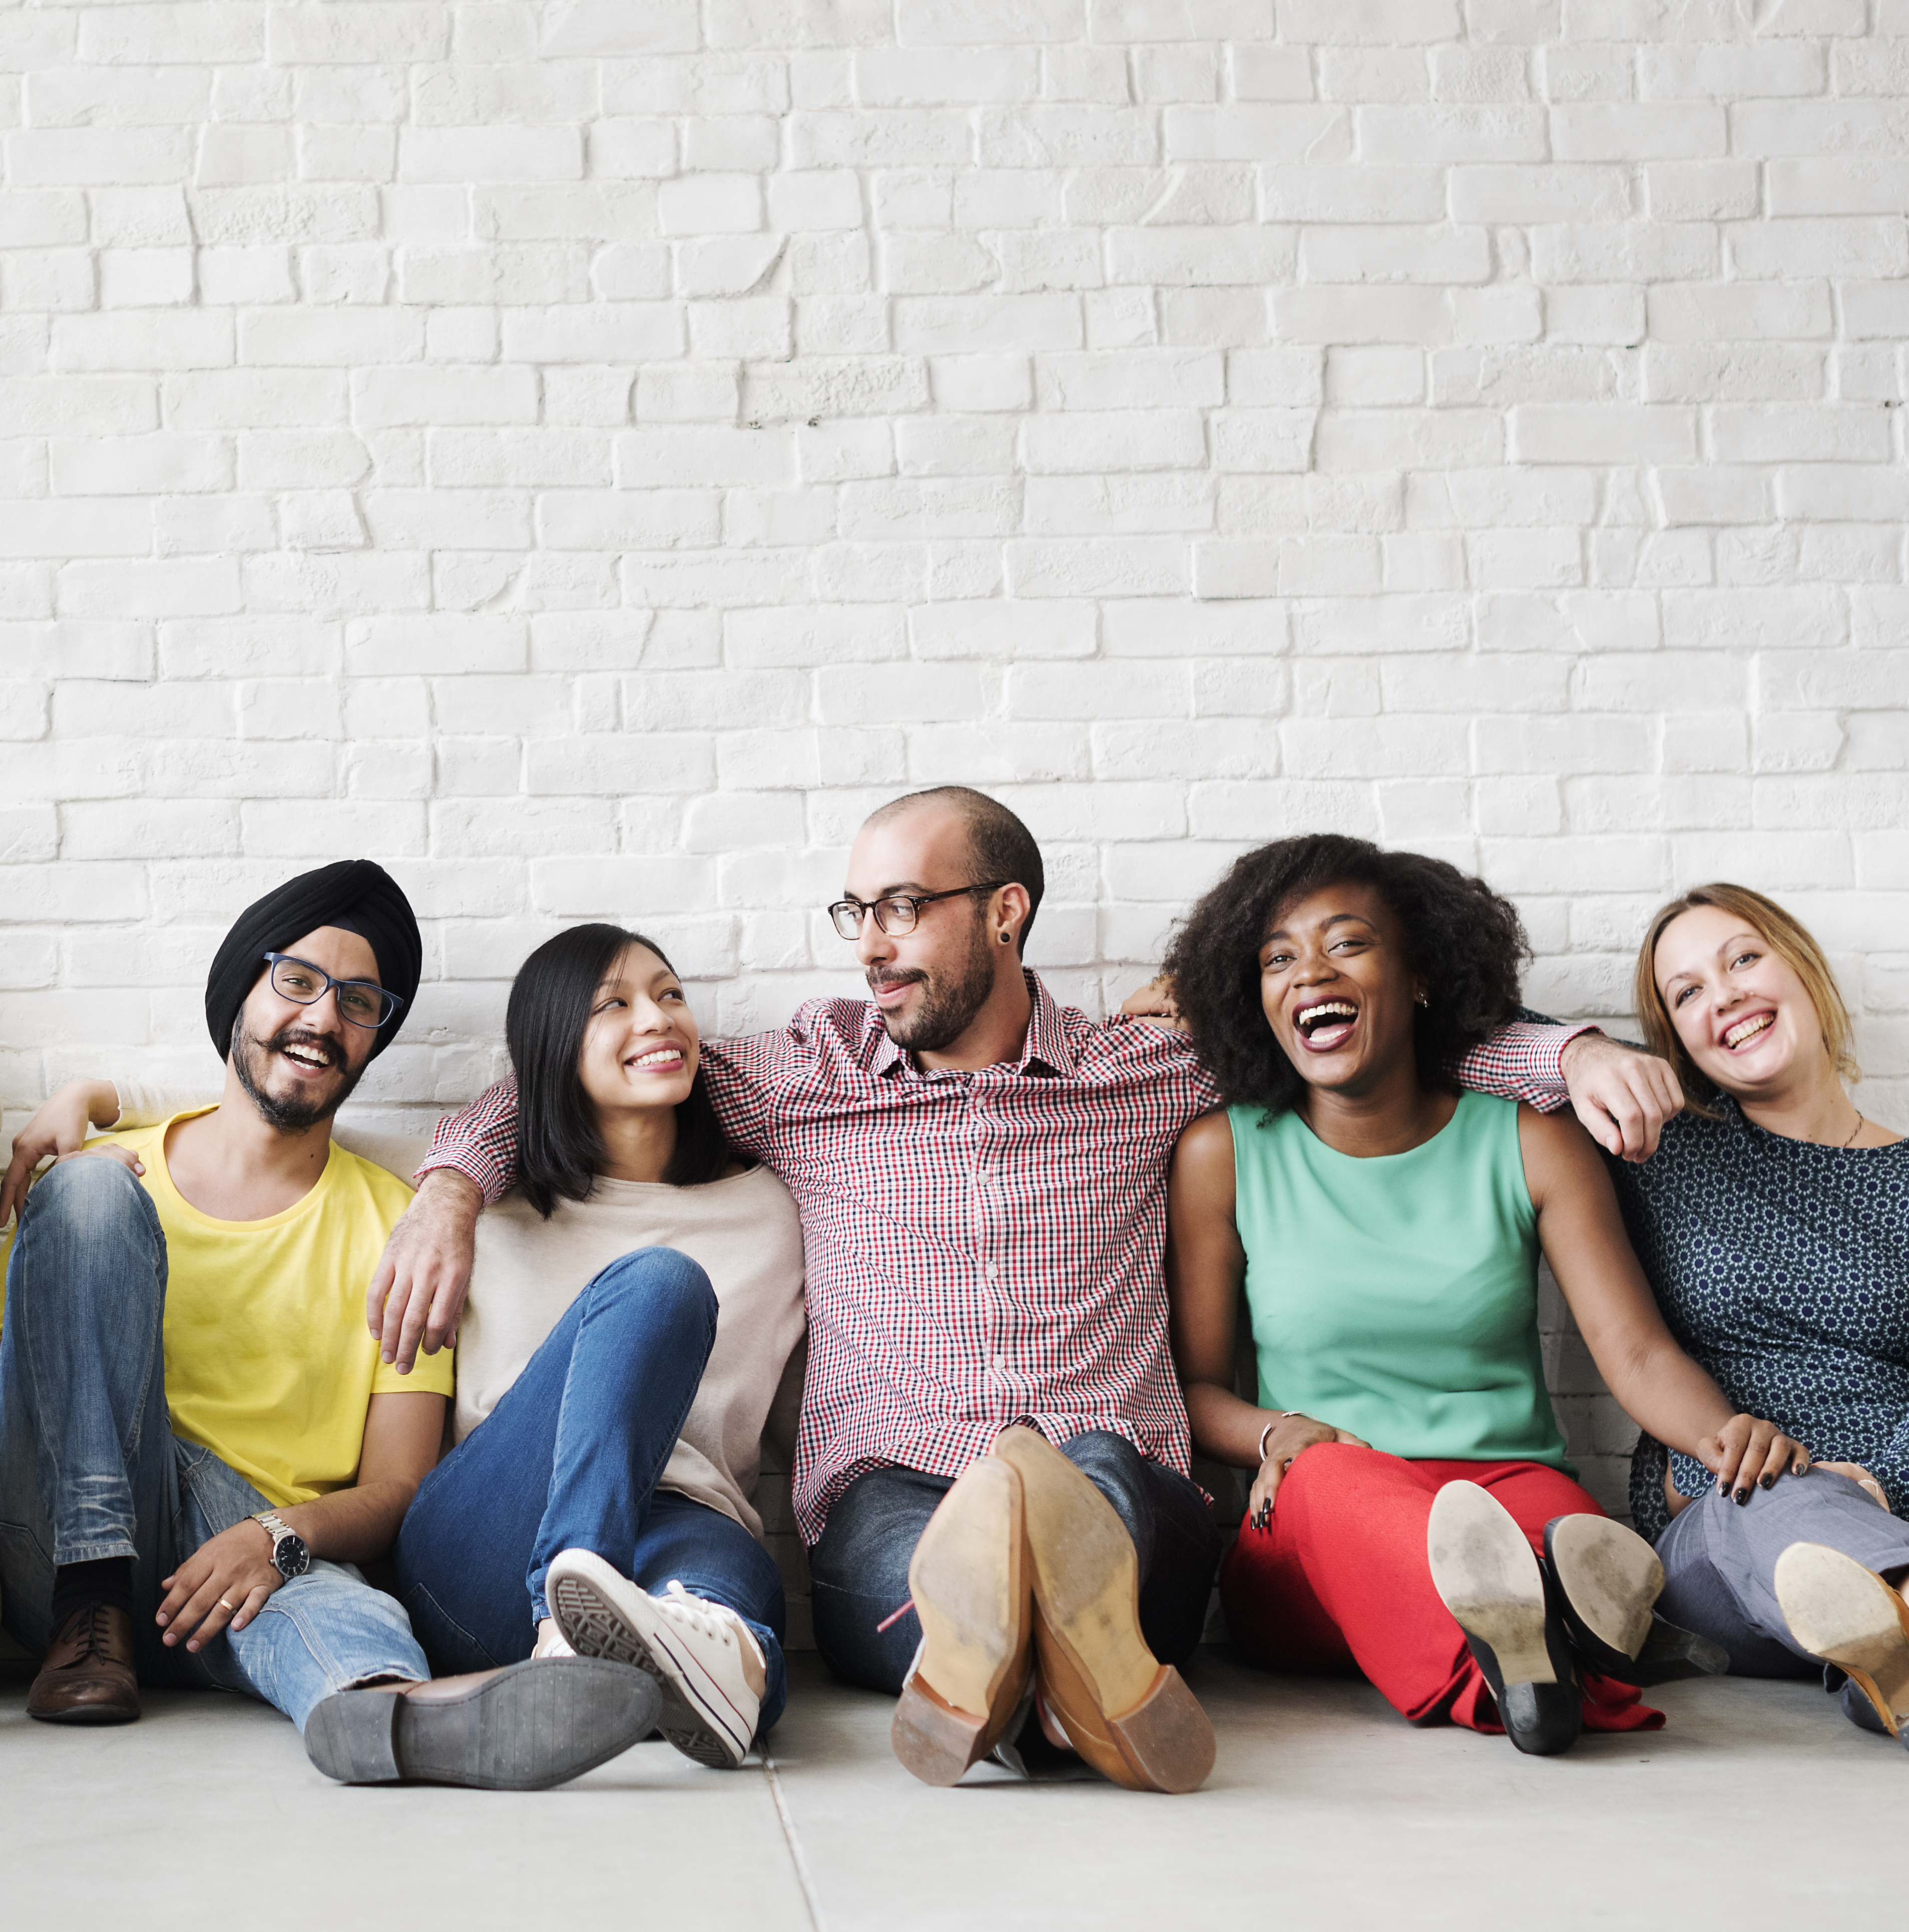 10 Points on Retaining and Attracting Talent through Employer Branding